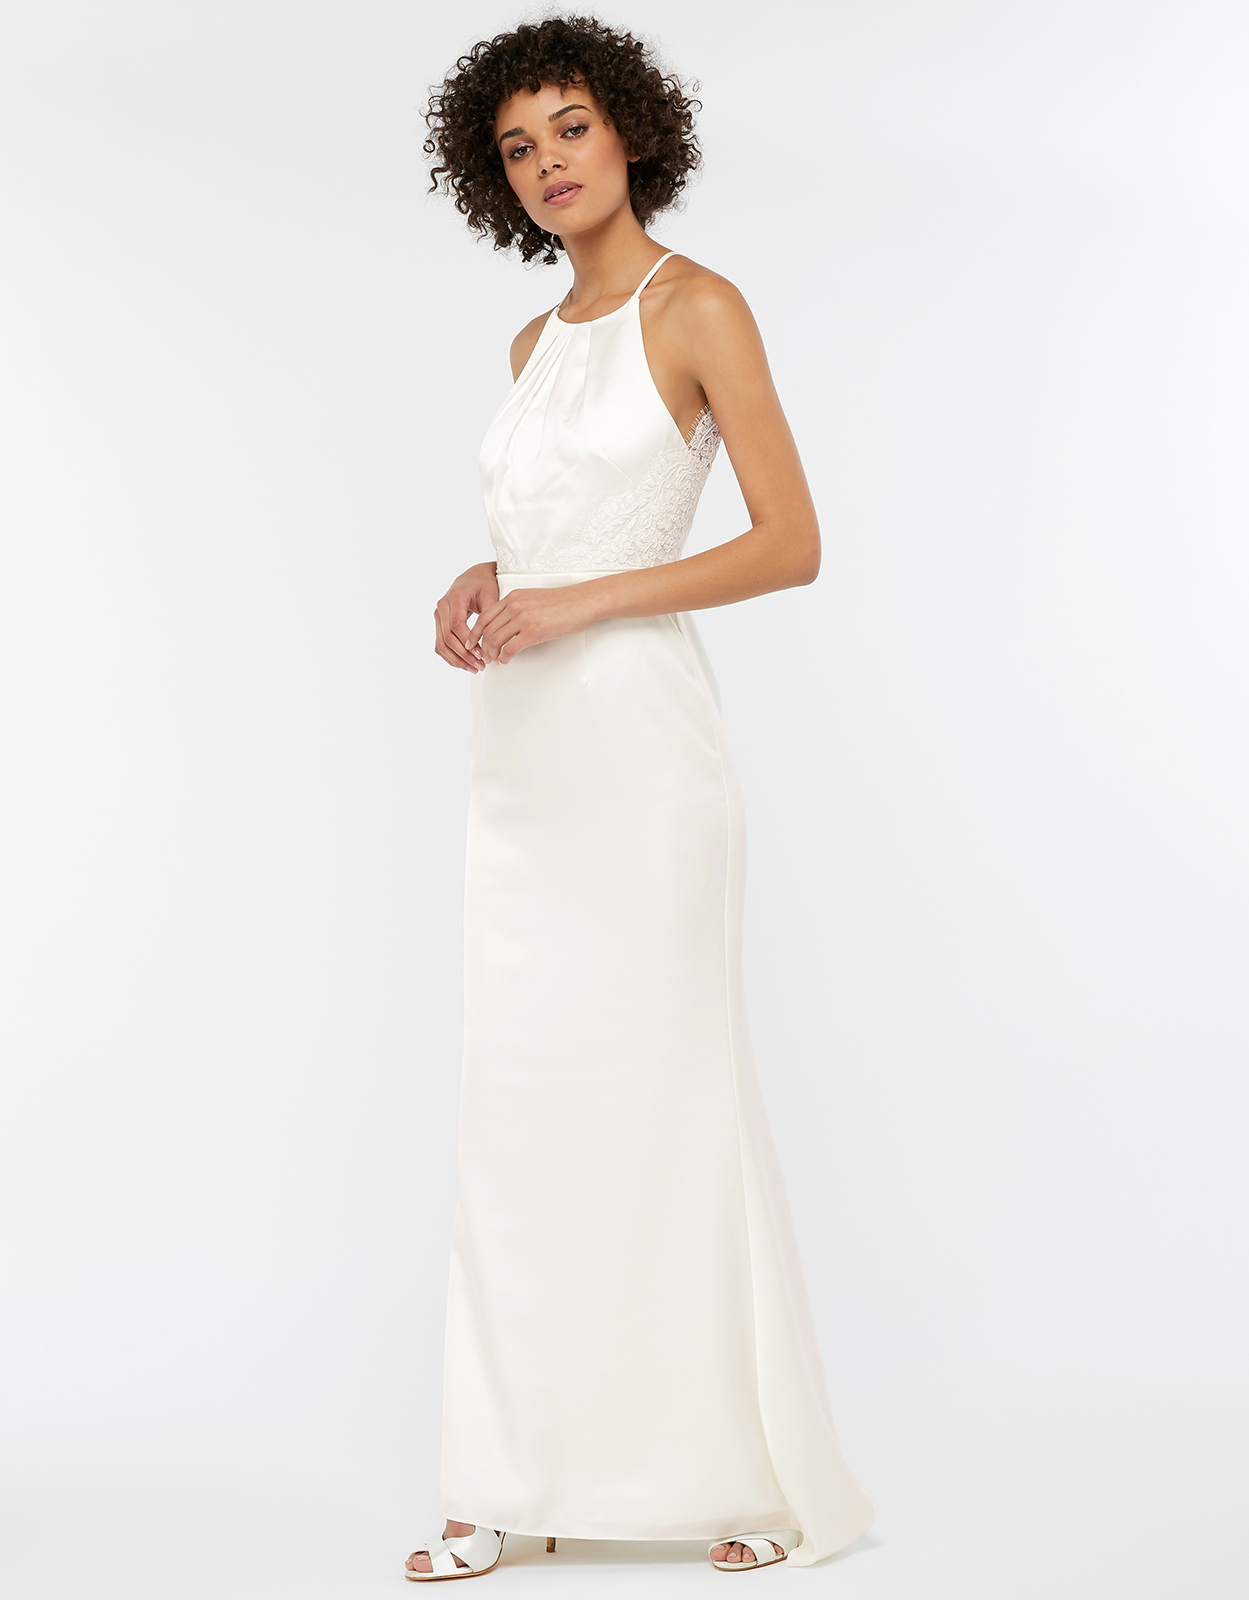 Monsoon Anne Lace Back Satin Maxi Wedding Dress